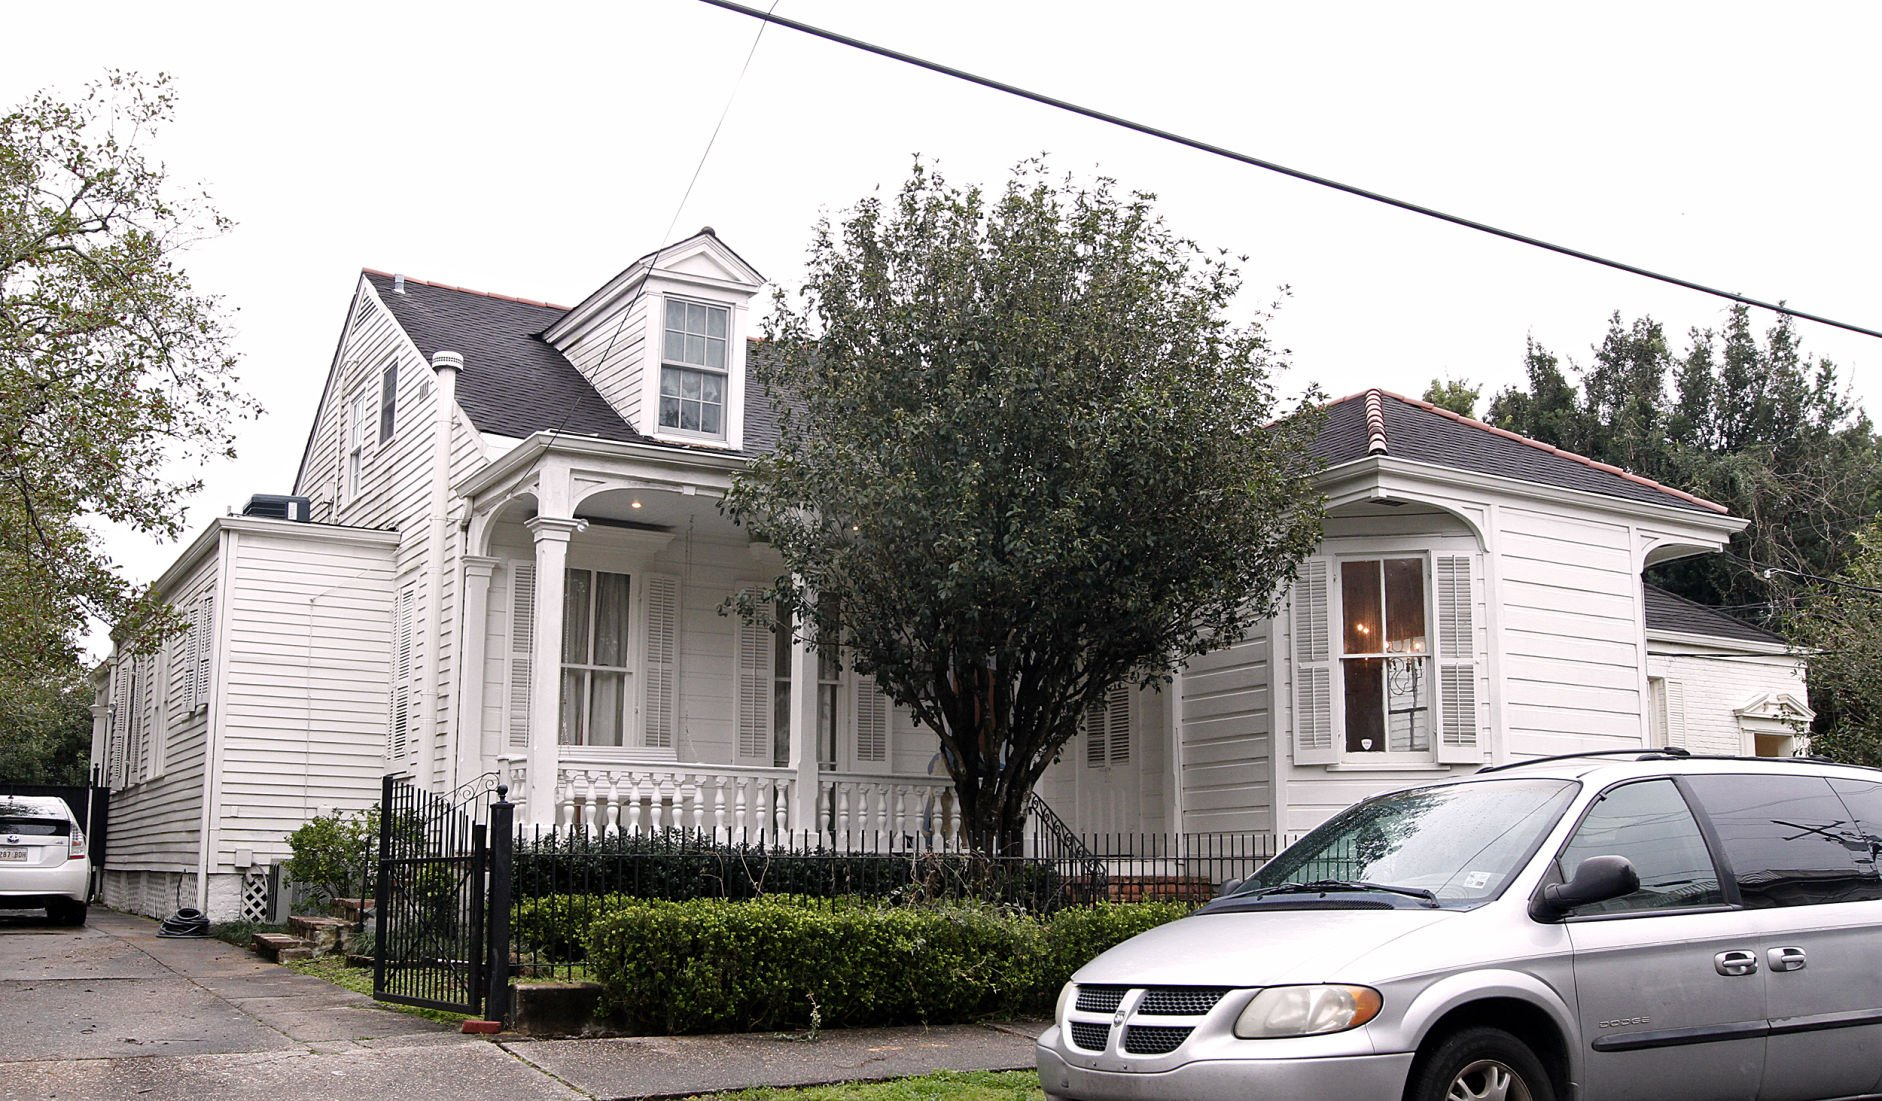 new orleans property transfers feb 4 8 2019 business rh theadvocate com